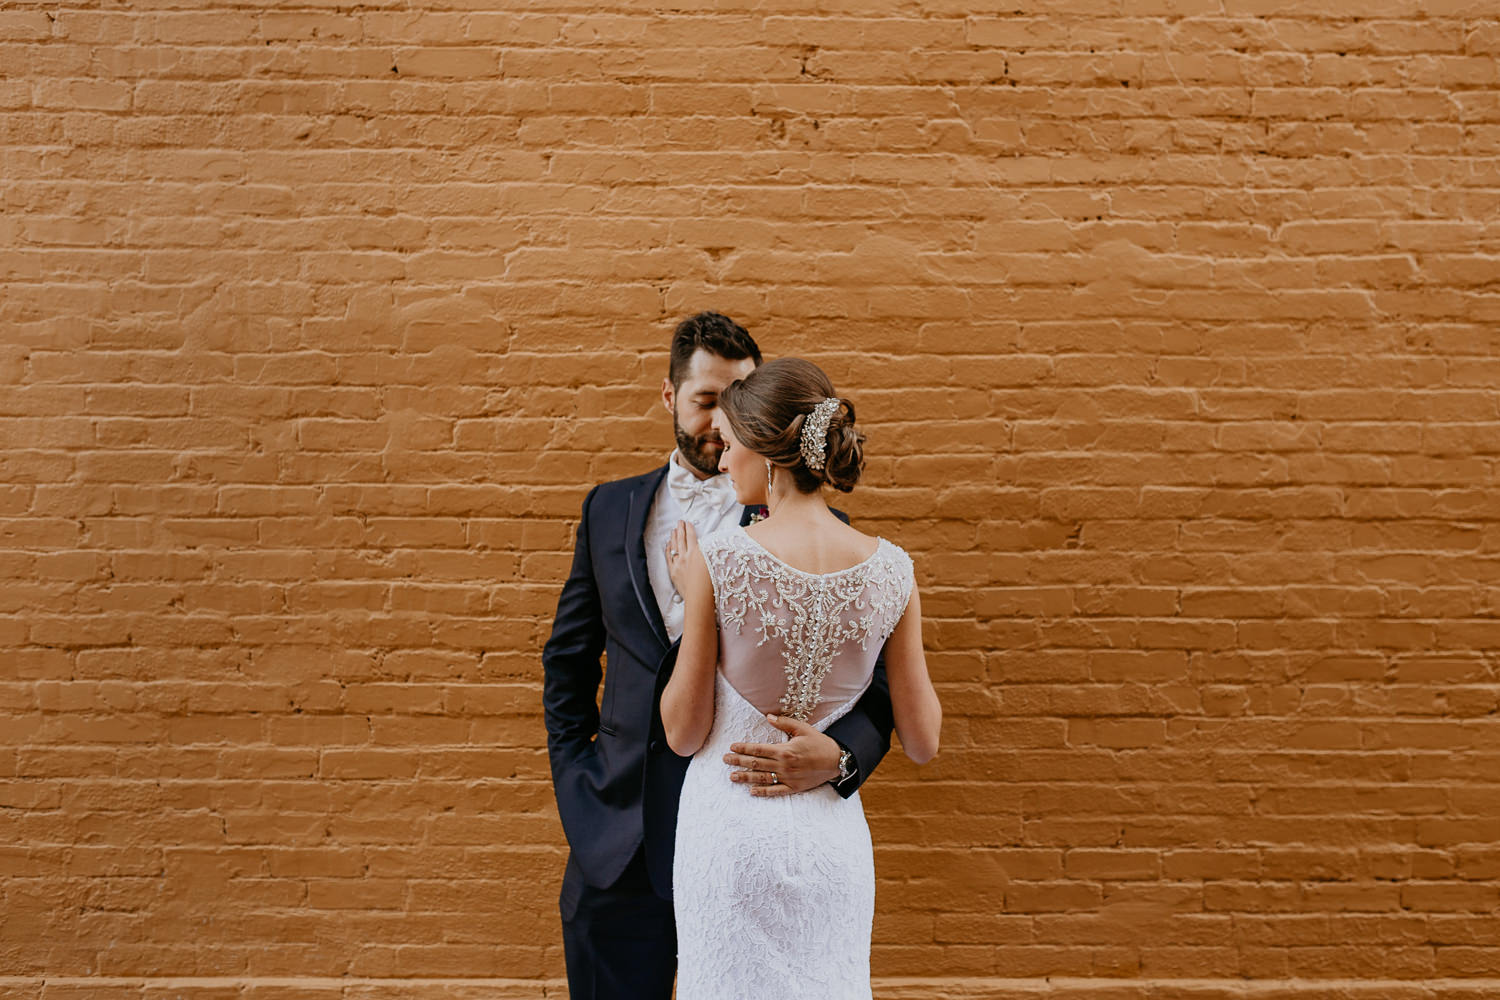 newlyweds posing in front of yellow brick wall